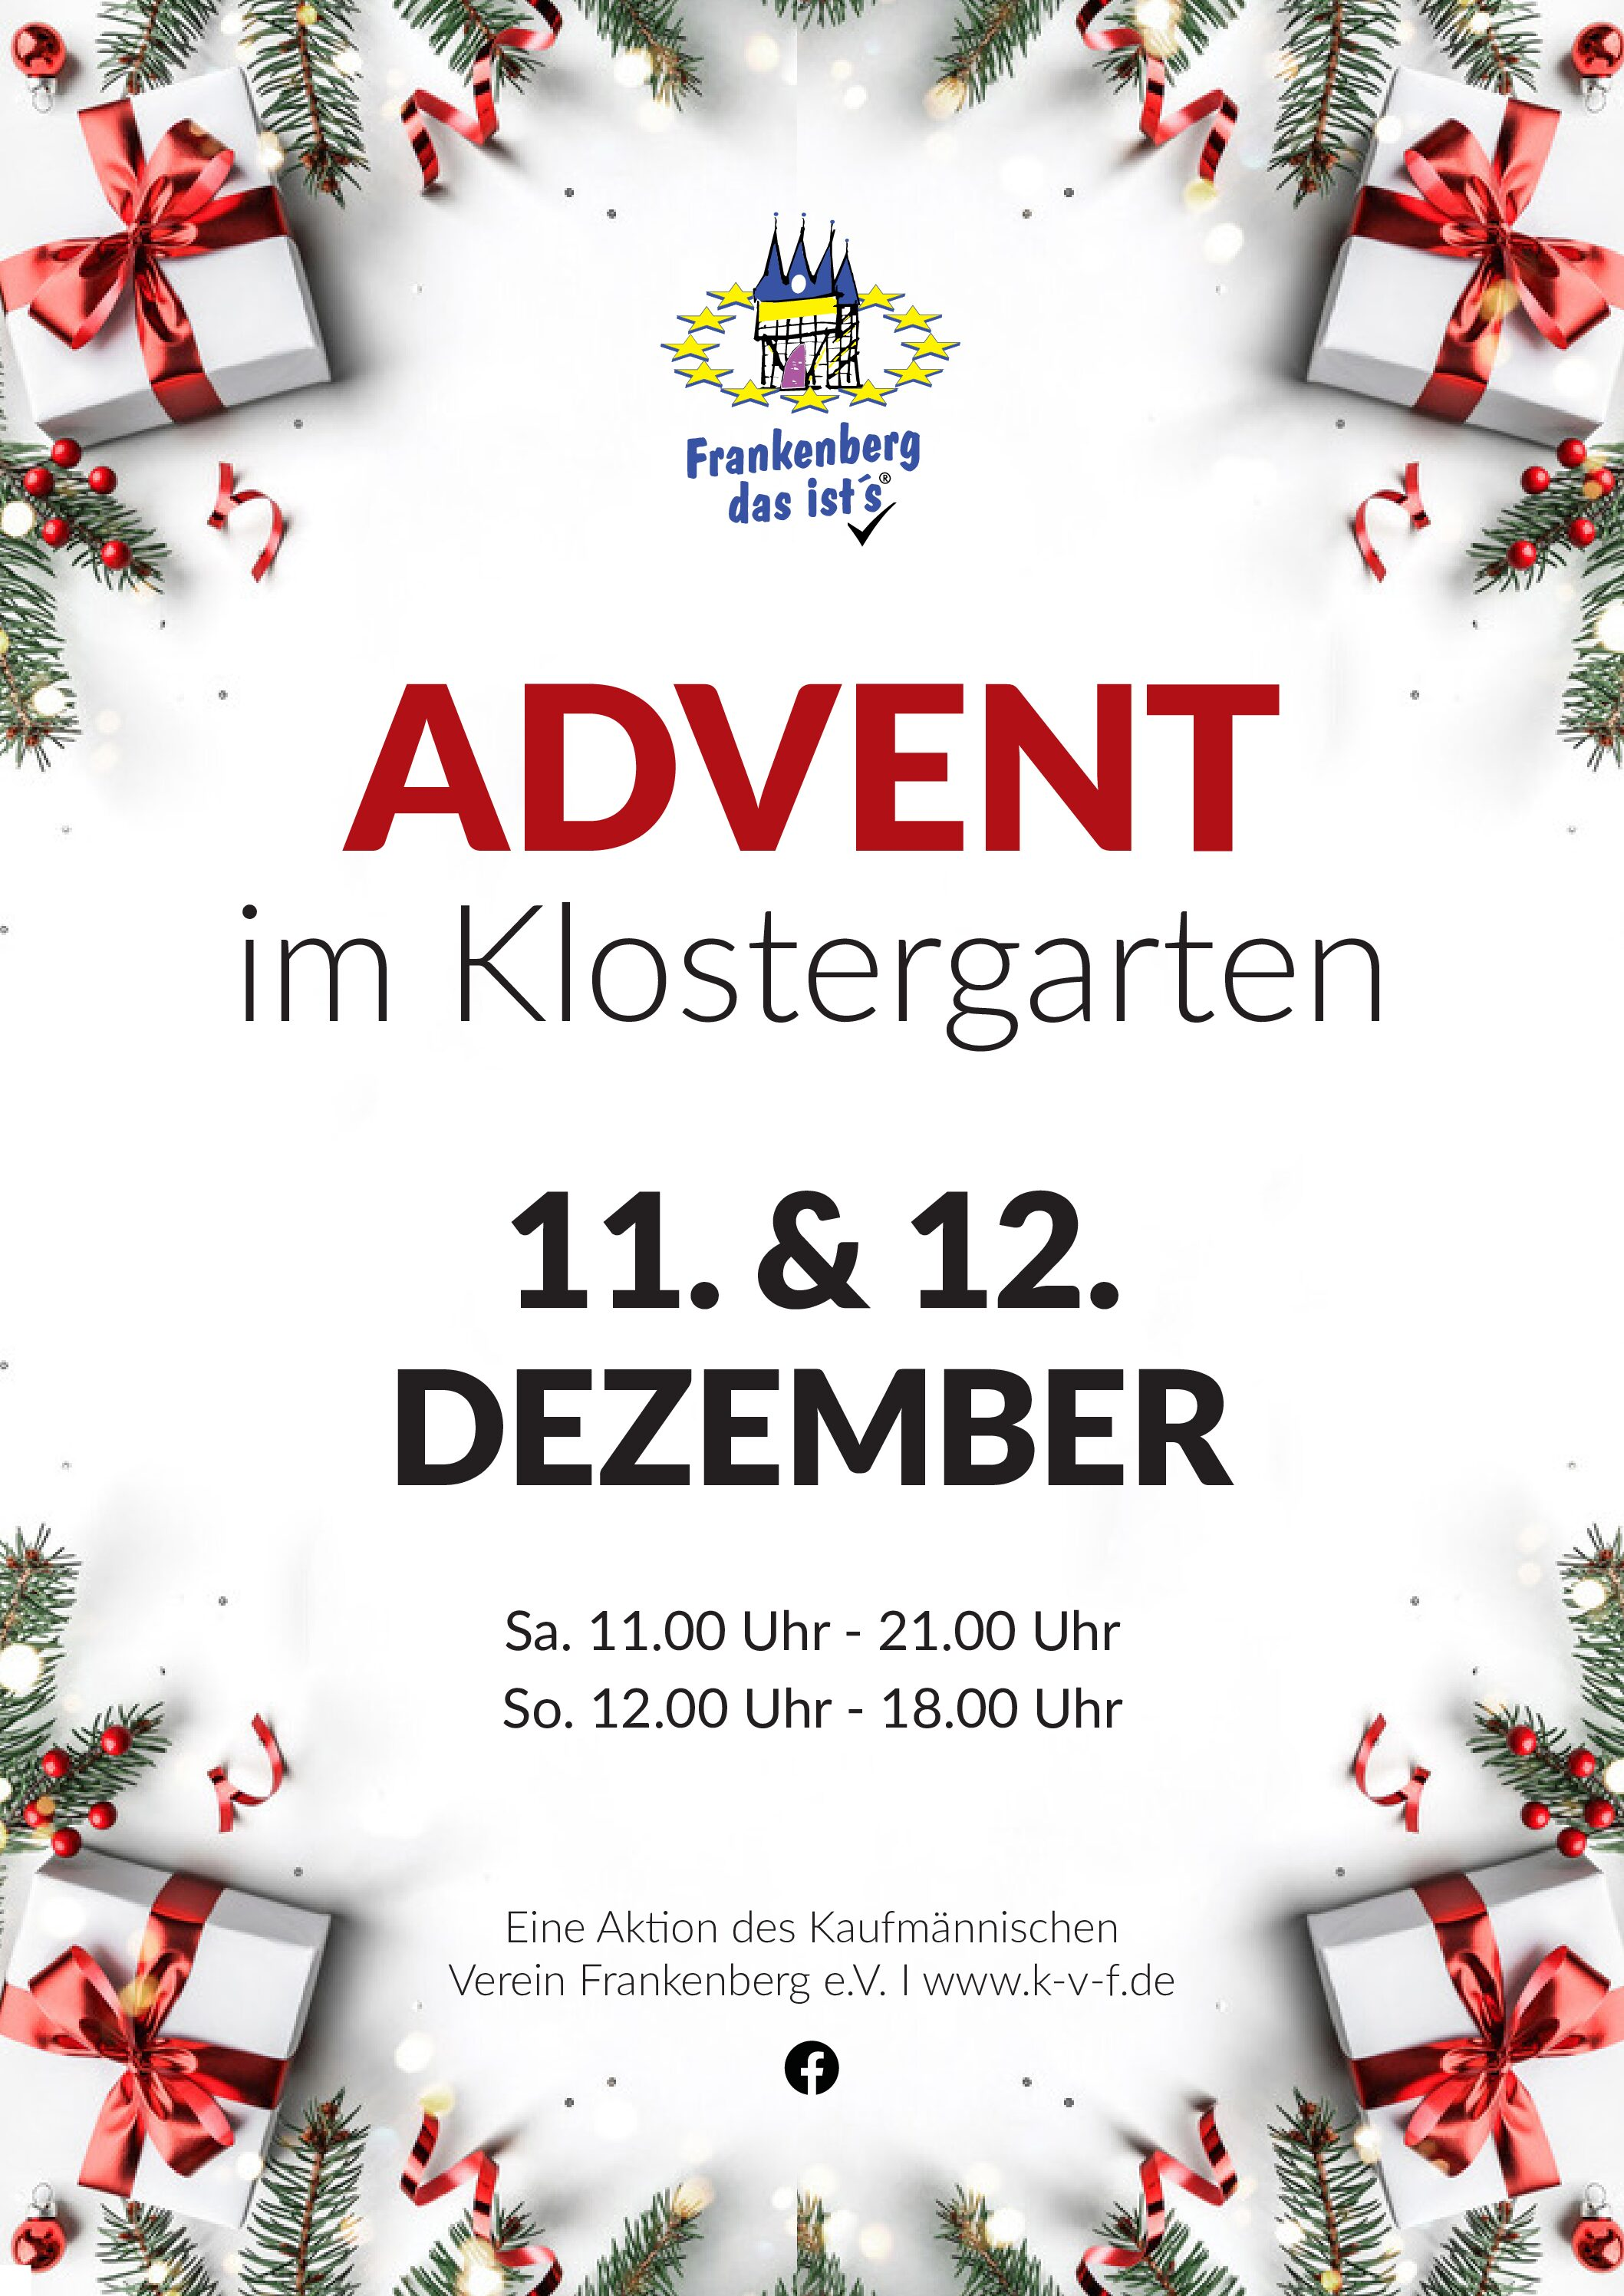 ADVENT im Klostergarten 2021